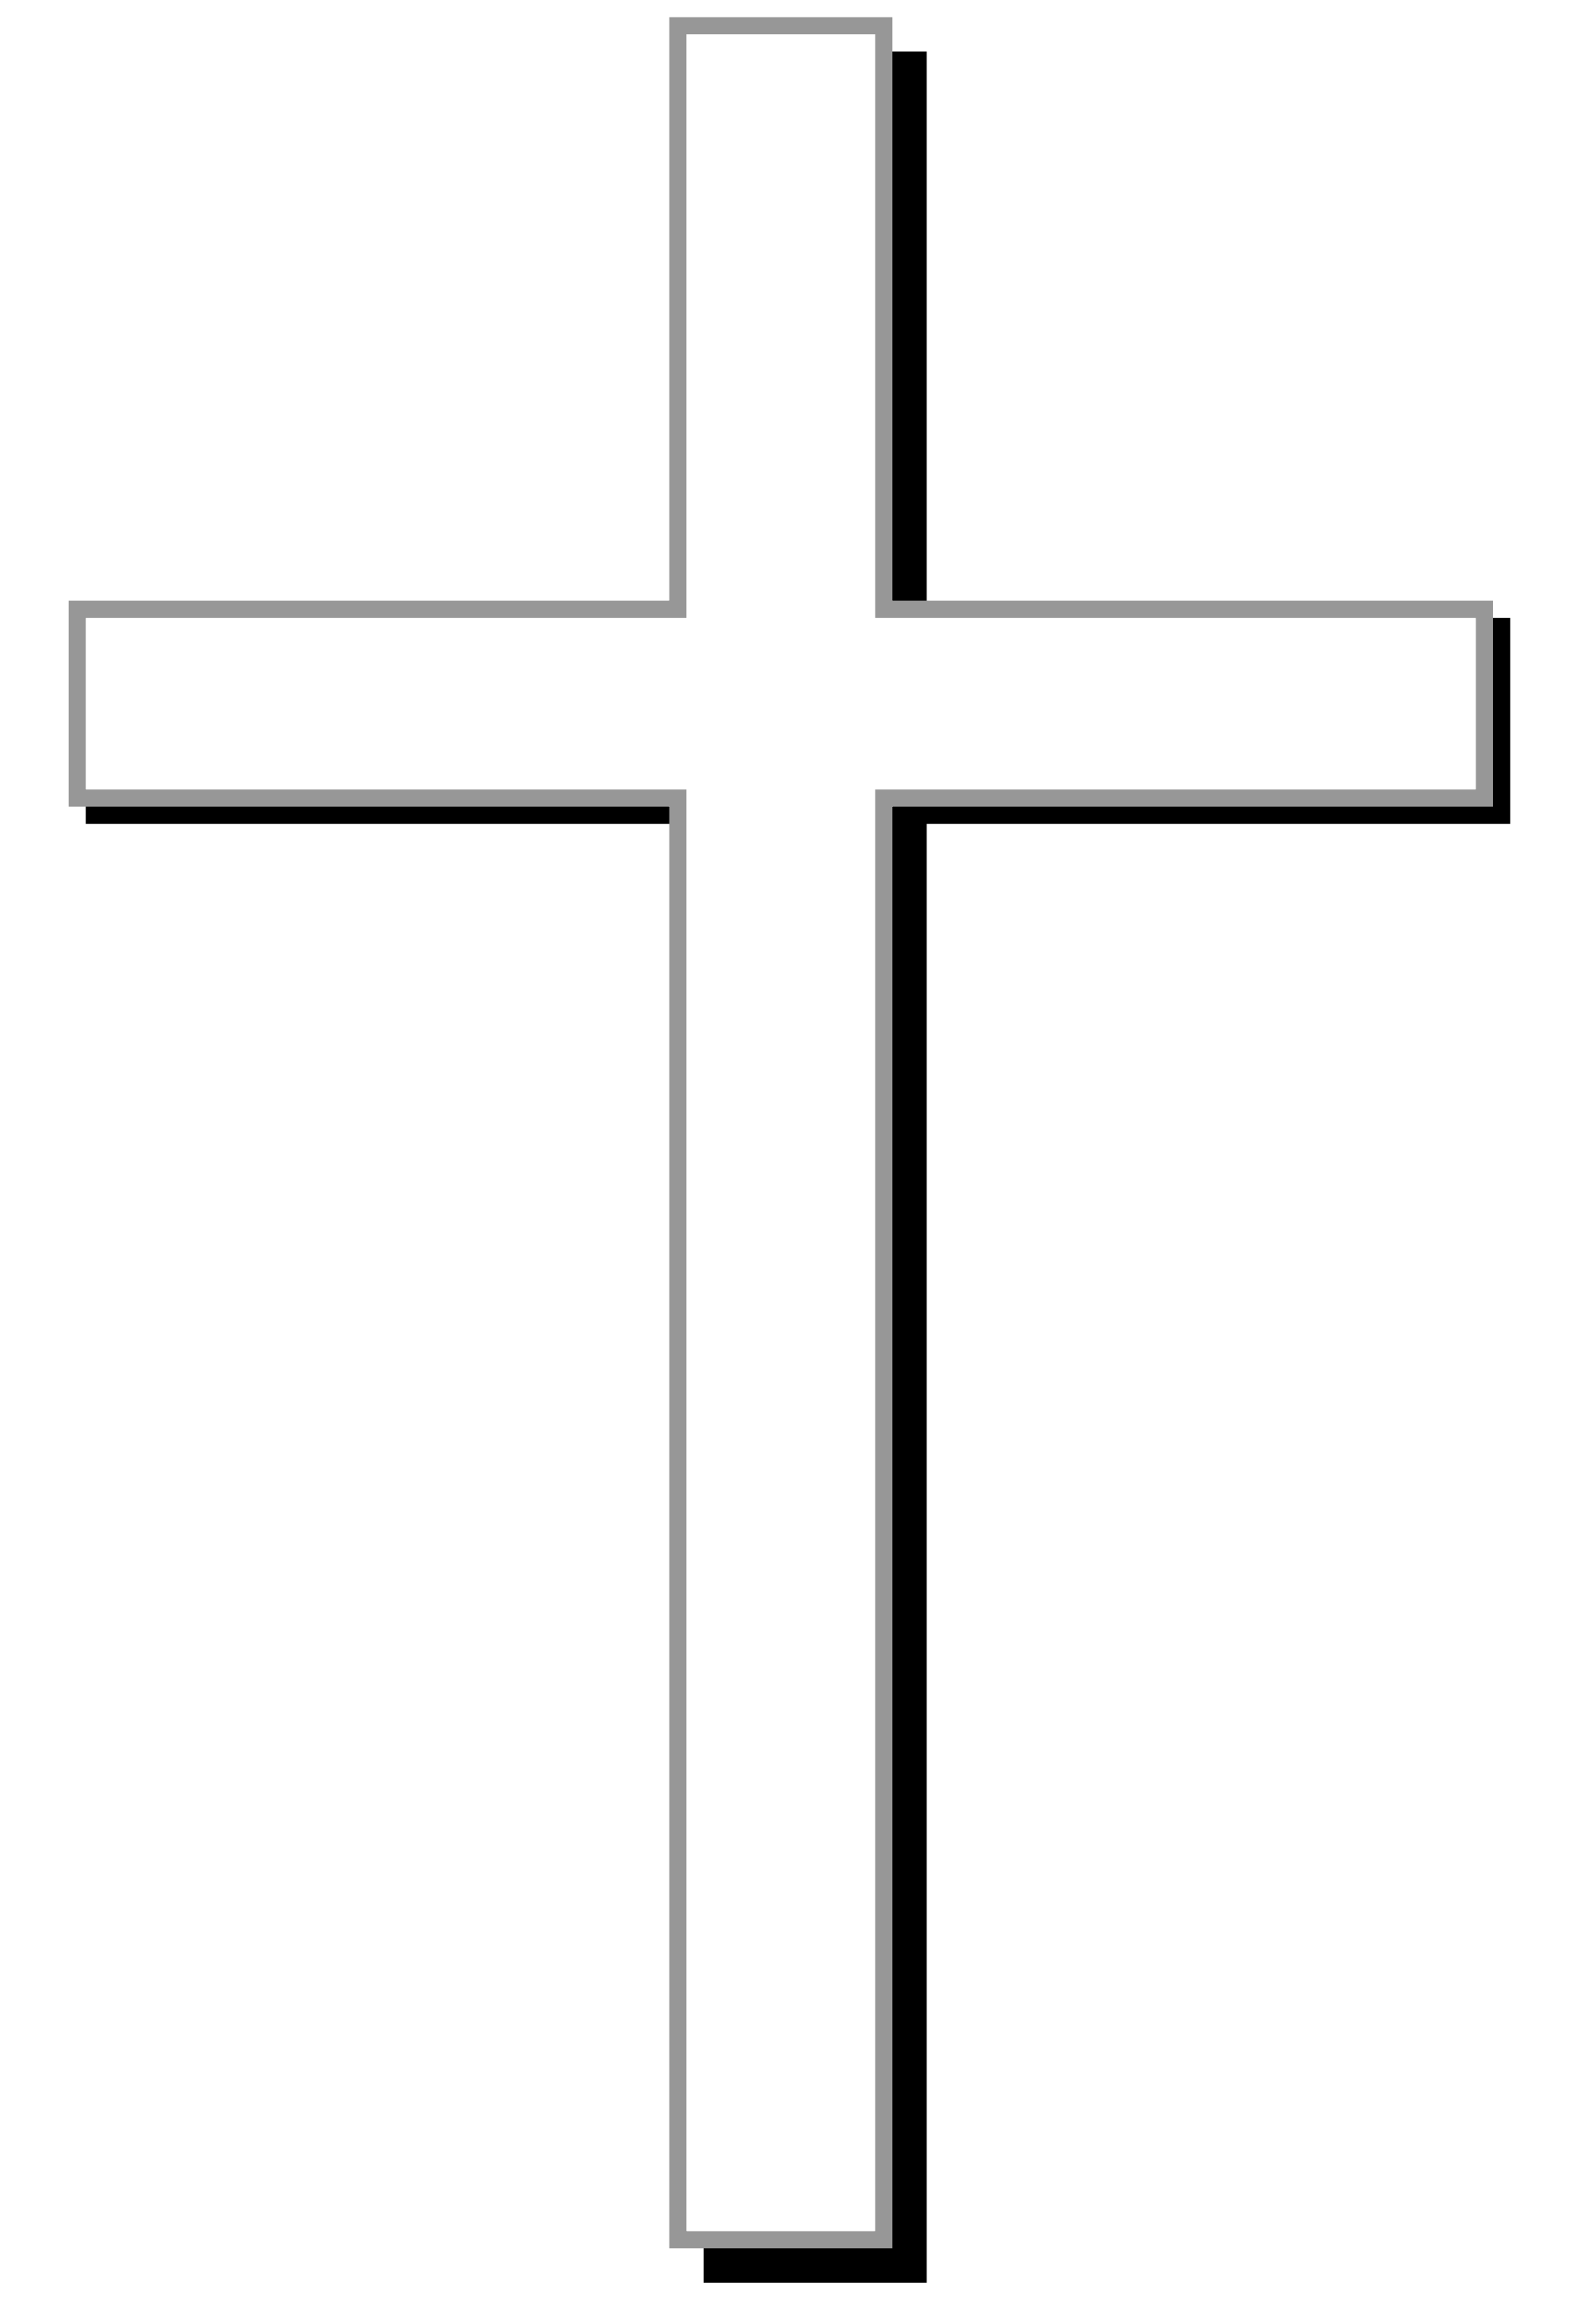 Clipart cross file. Svg wikimedia commons open